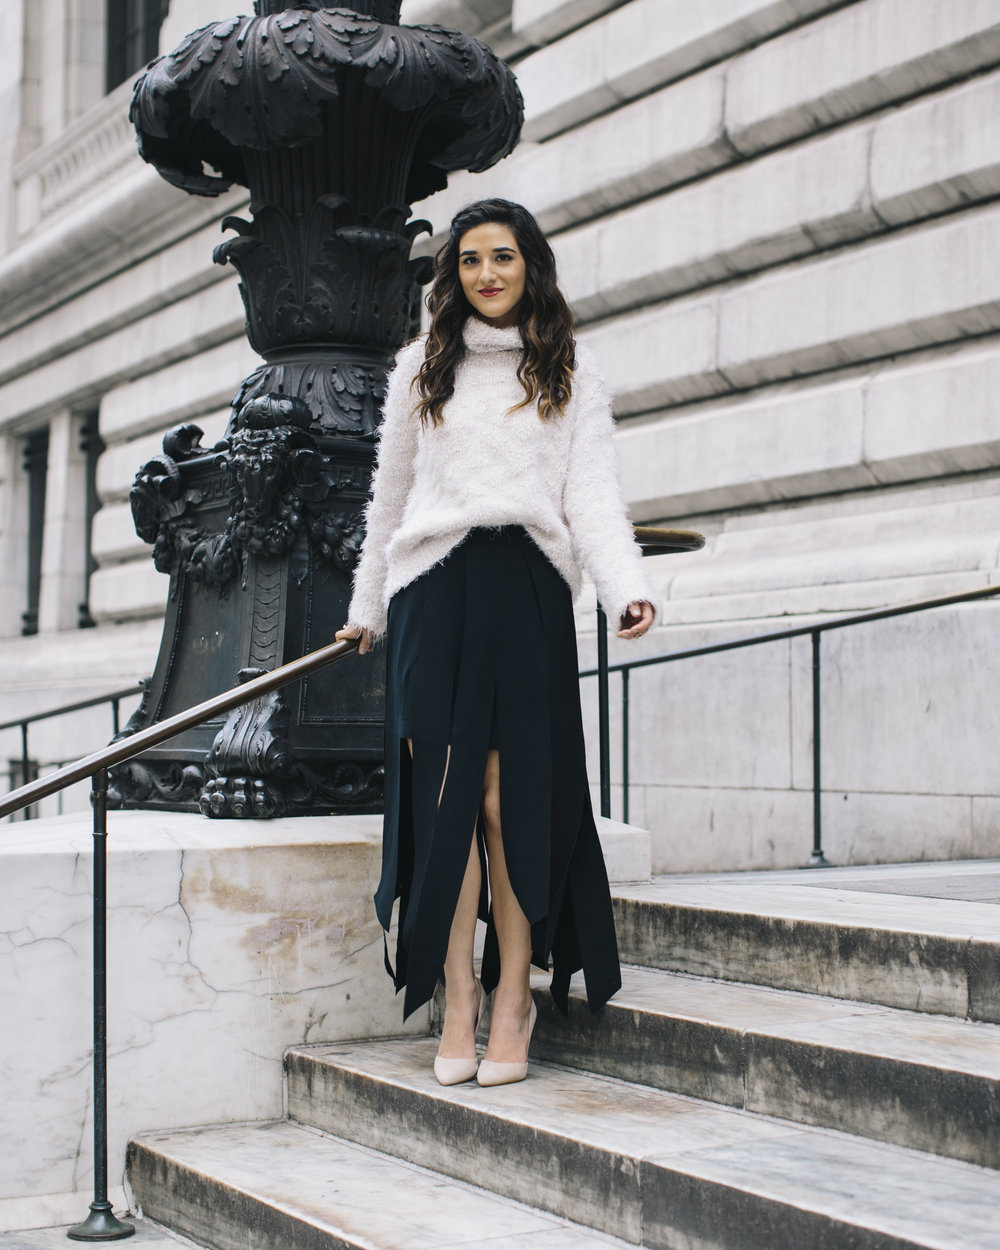 Shopping with Octer Fringe Skirt Louboutins & Love Fashion Blog Esther Santer NYC Street Style Blogger Outfit OOTD Buy Trendy Sweater Cozy Zara Steve Madden Nude Heels Neutral Colors Navy White Winter Beautiful Photoshoot New York City Hair Girl Women.jpg